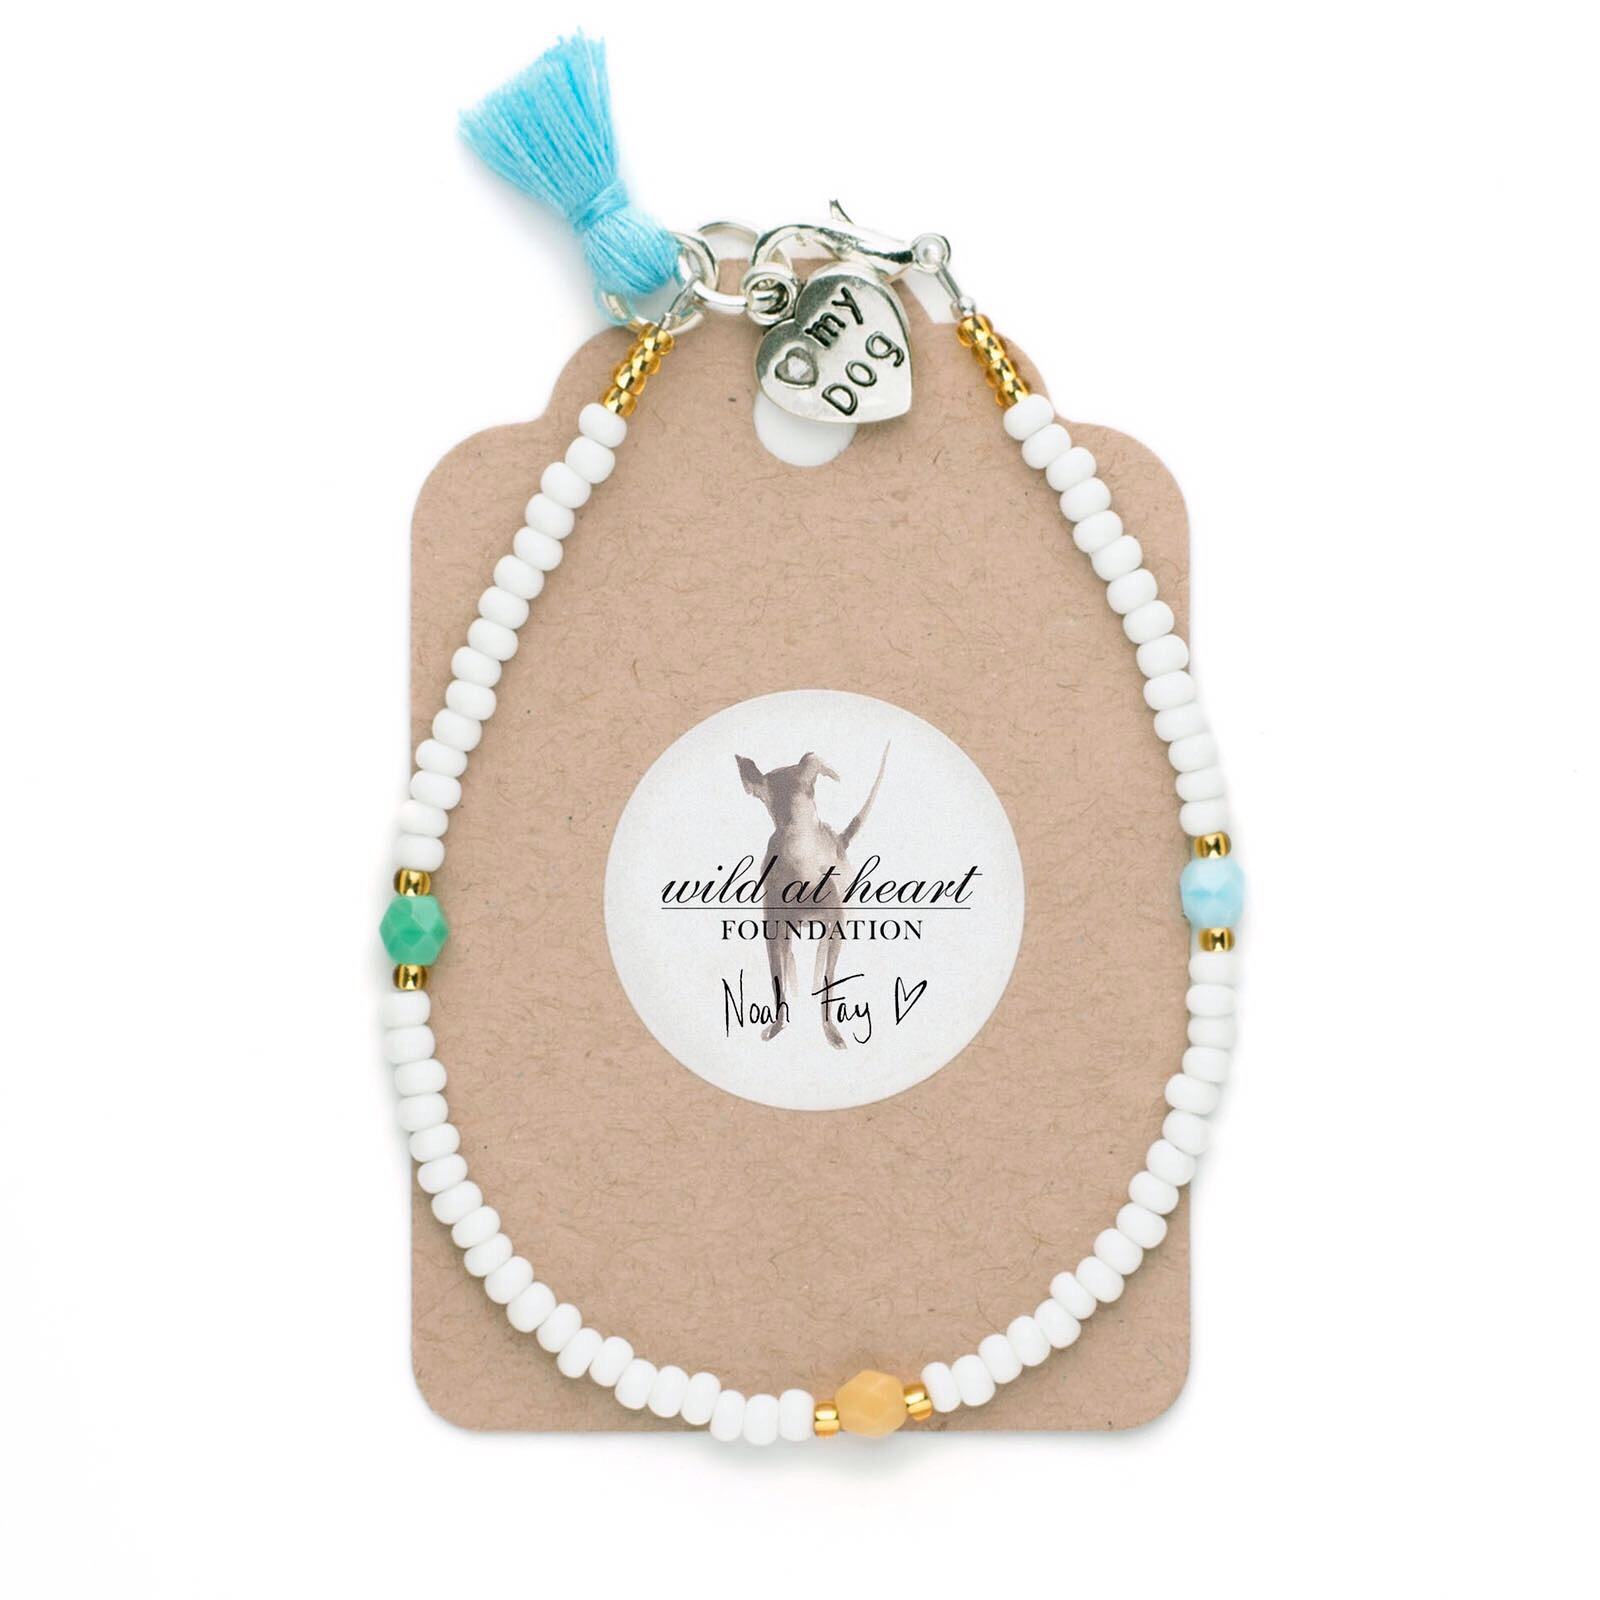 The charming Wild at Heart Foundation bracelet - just £10!